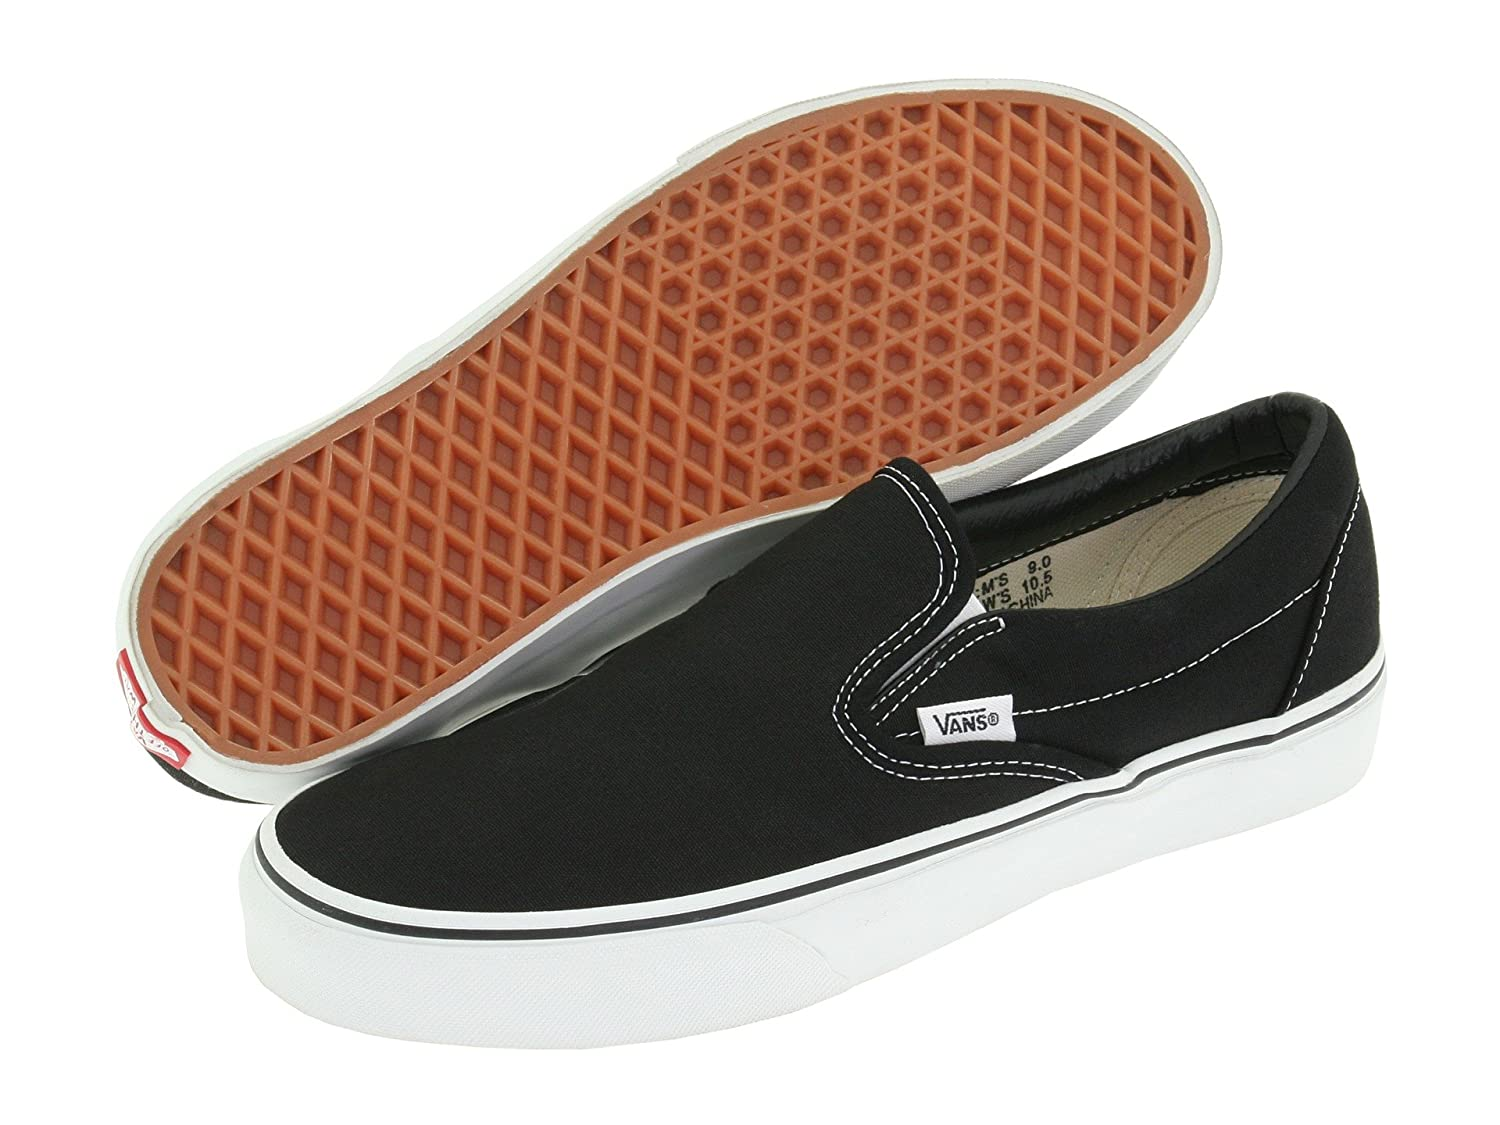 Vans Men's Classic Slip On (Suede & 13.5 Suiting) Skateboarding Shoes B075B33WNT 13.5 & B(M) US Women / 12 D(M) US Men|Classic Black/White 79e293